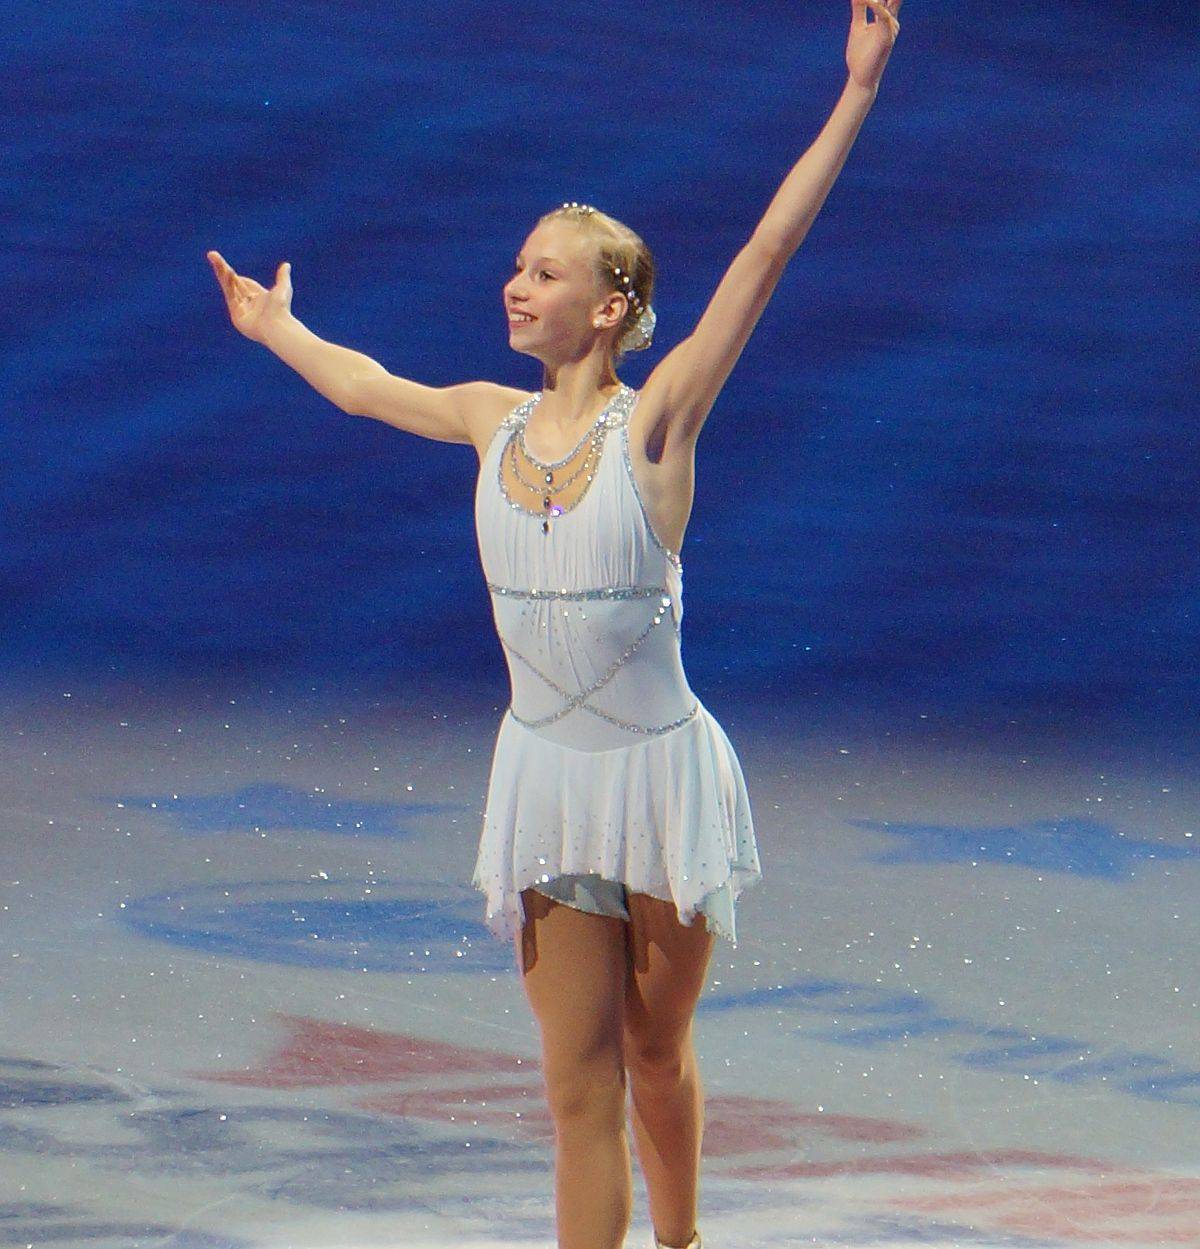 polina edmunds wikipedia